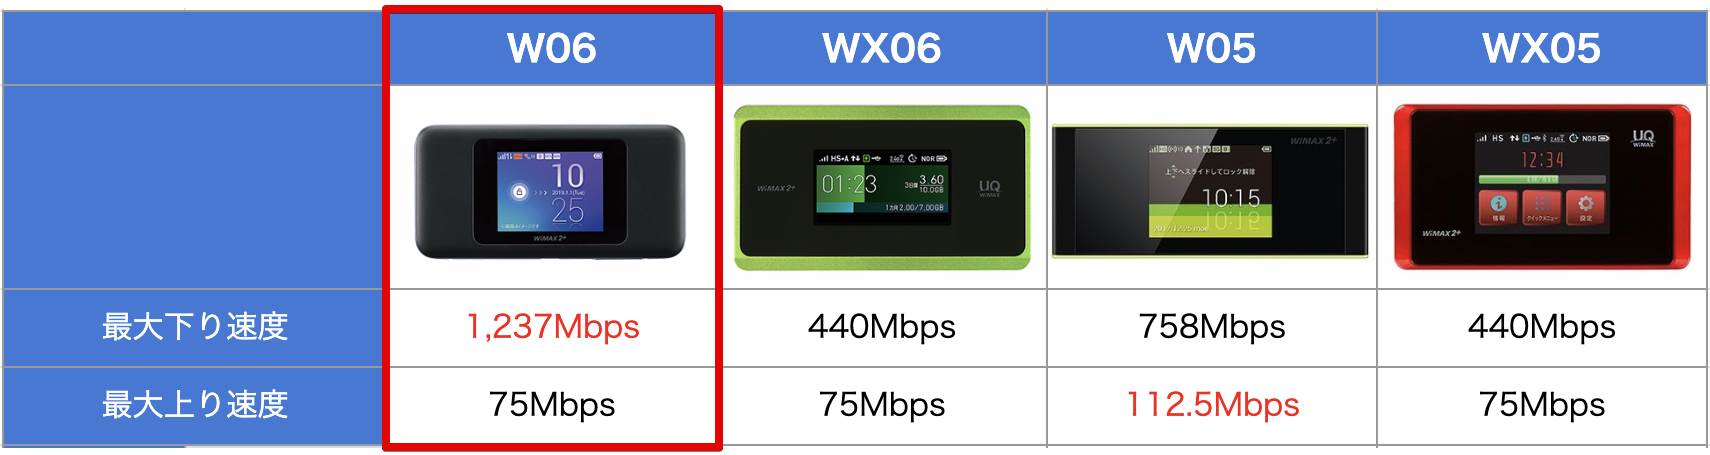 WiMAX端末の速度比較表